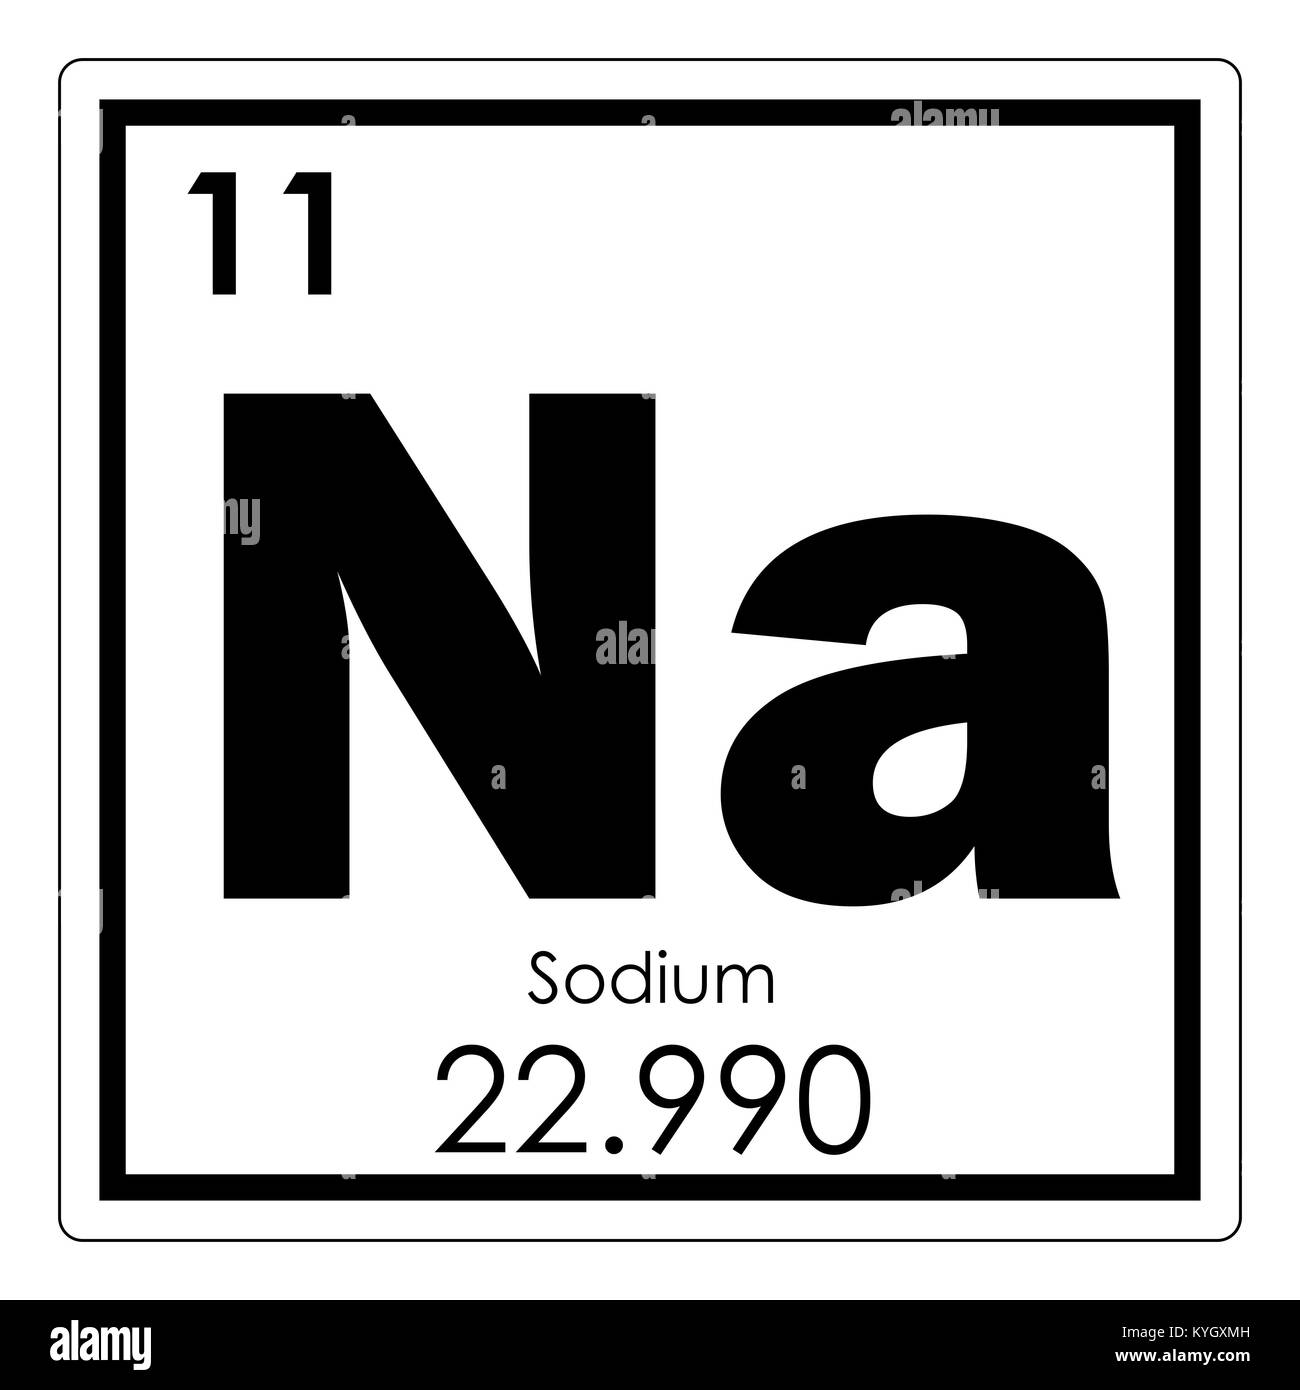 Sodium chemical element periodic table science symbol stock photo sodium chemical element periodic table science symbol urtaz Gallery